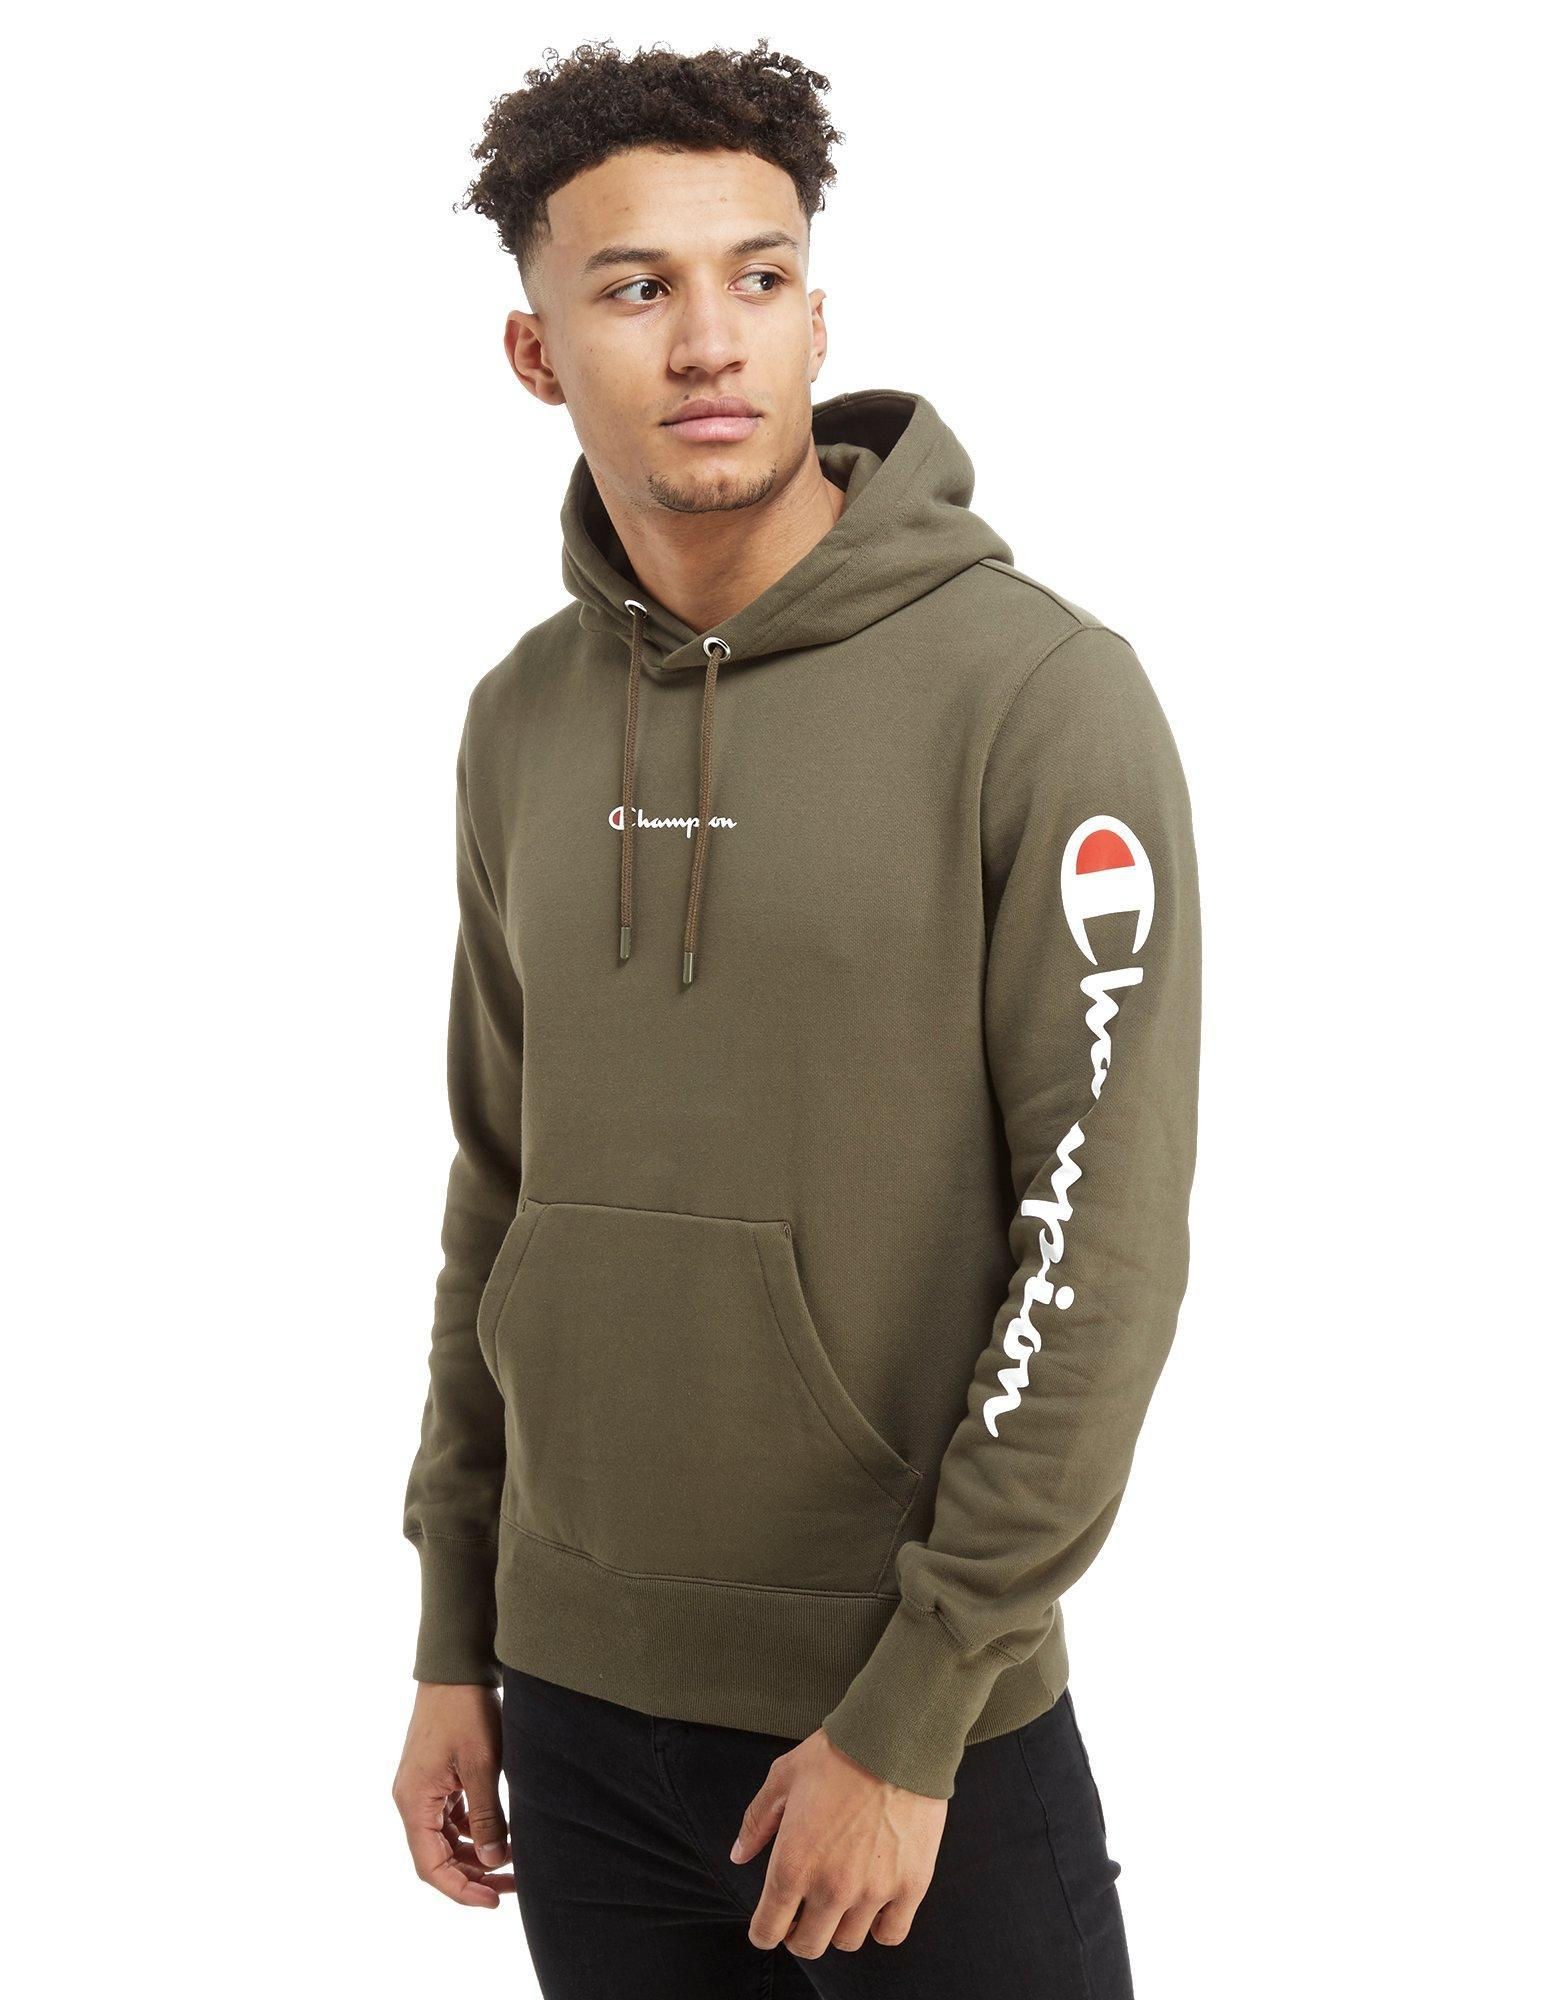 Natural Hoodie Sleeve For Lyst In Champion Script Men Fqwa4